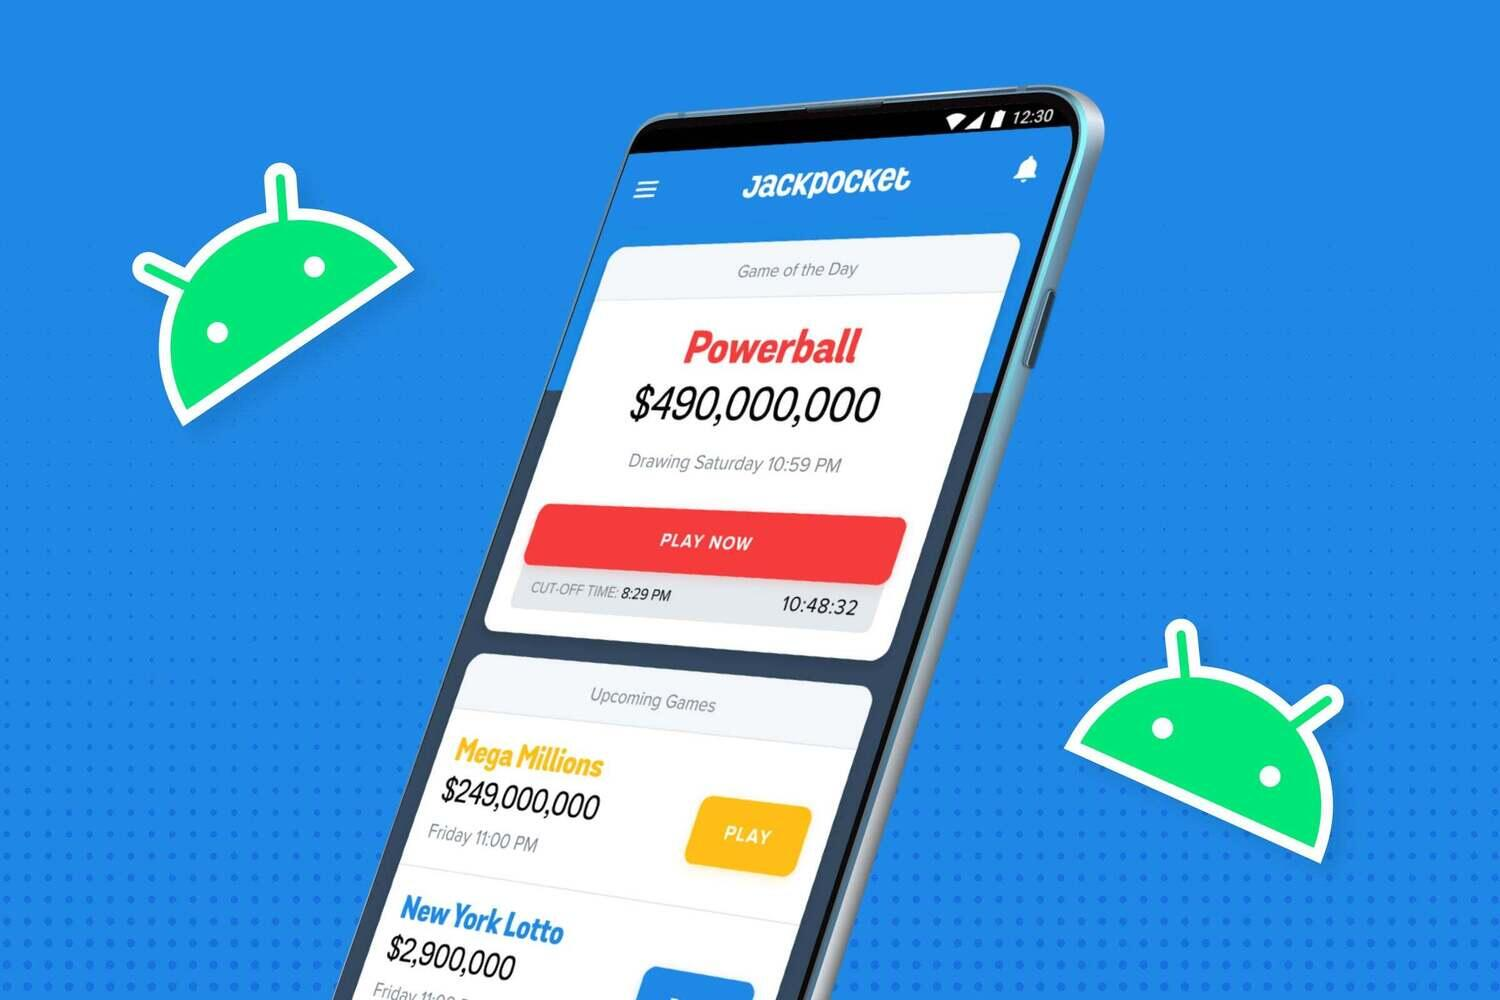 jackpocket lottery app for android